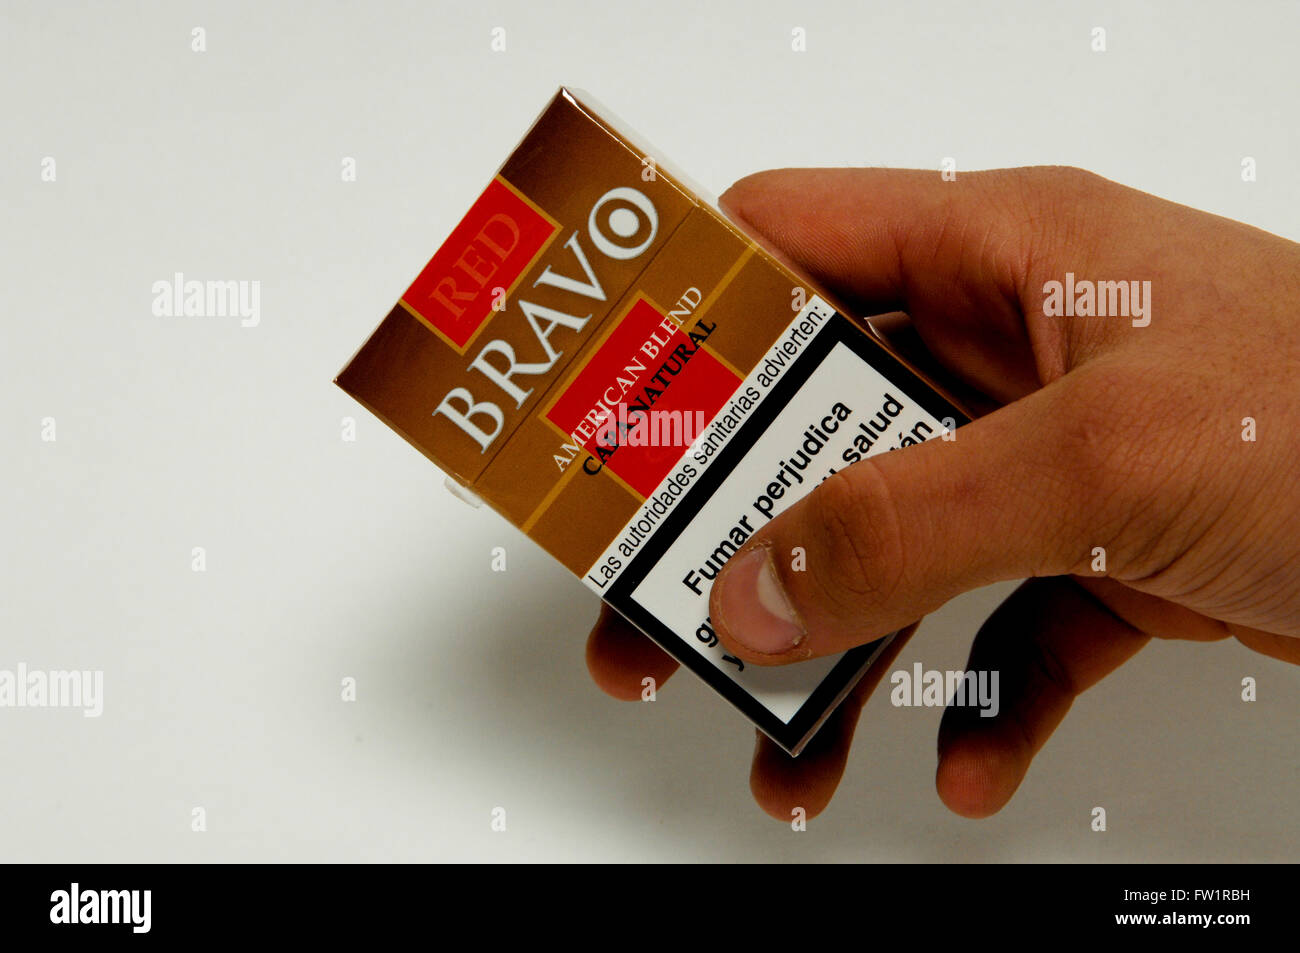 Red Bravo American Blend Capa Natural Cigarettes Stock Photo